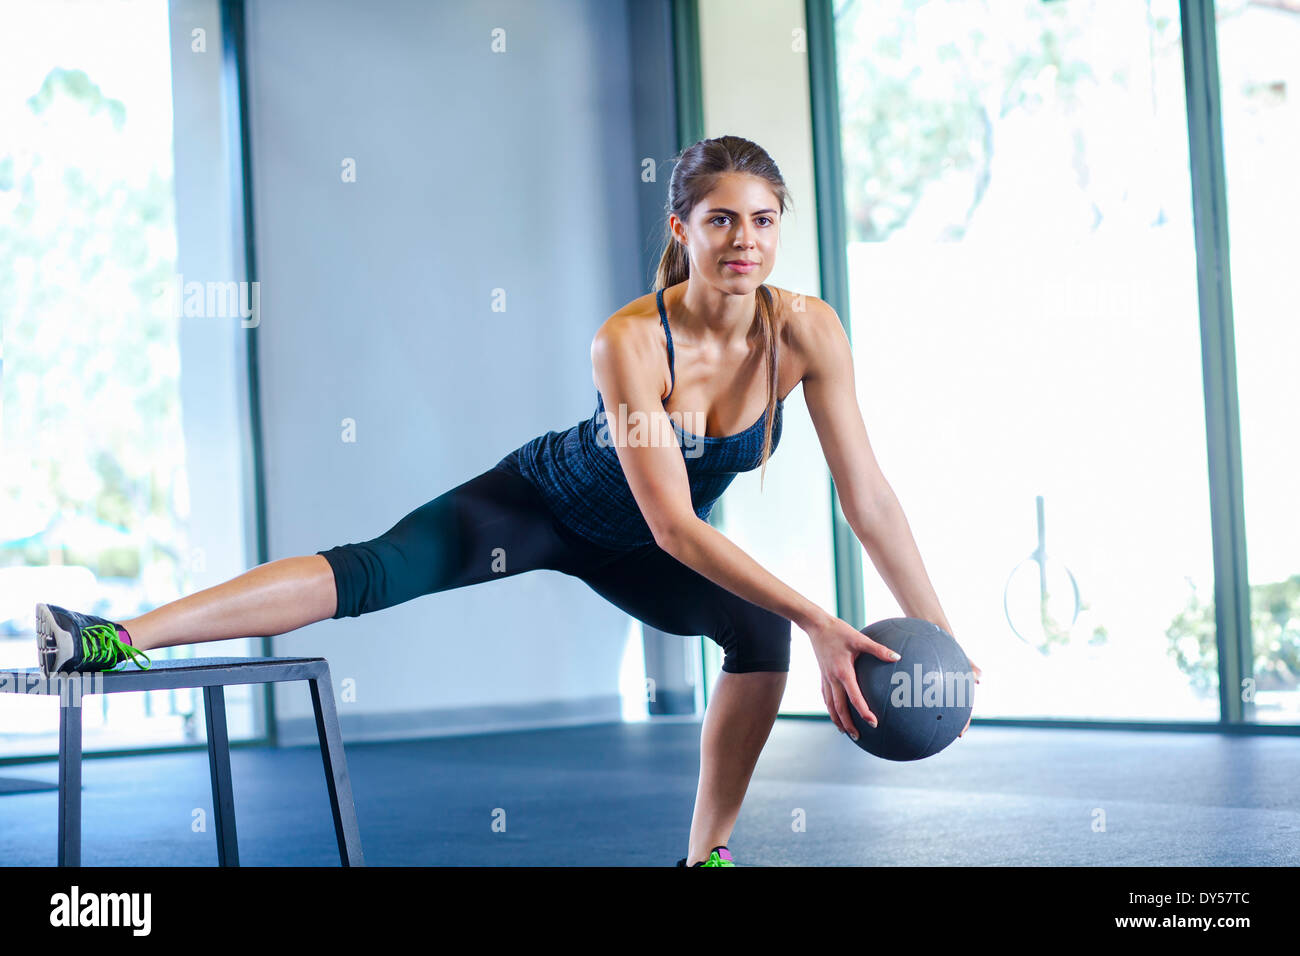 Young woman working out with medicine ball - Stock Image